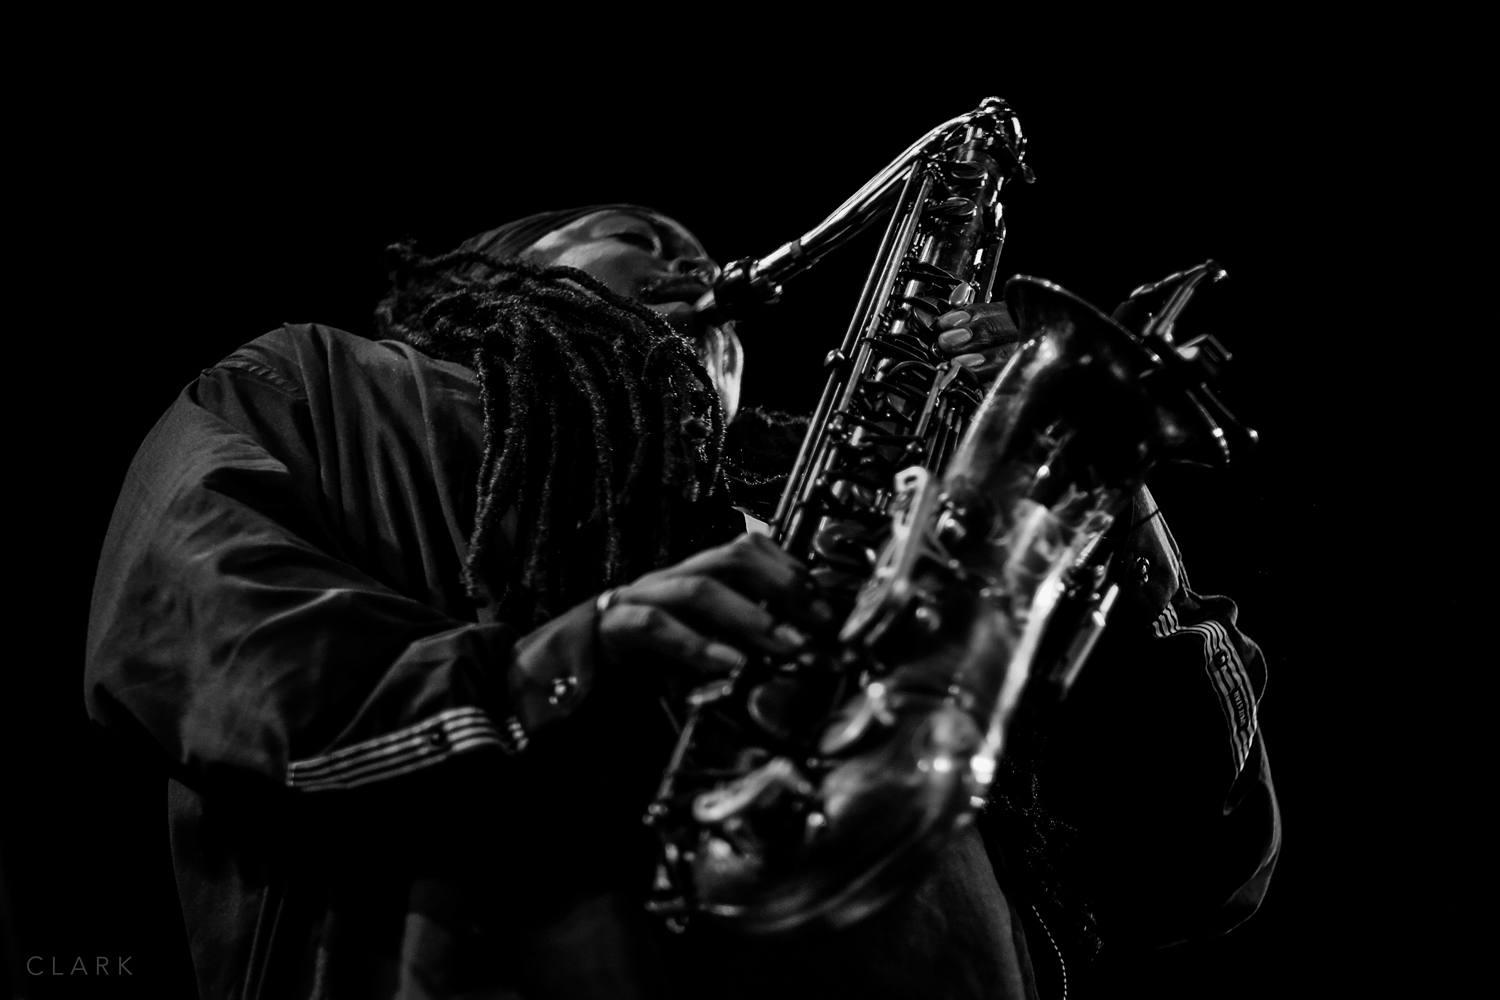 006_DerekClarkPhoto-Courtney_Pine.jpg